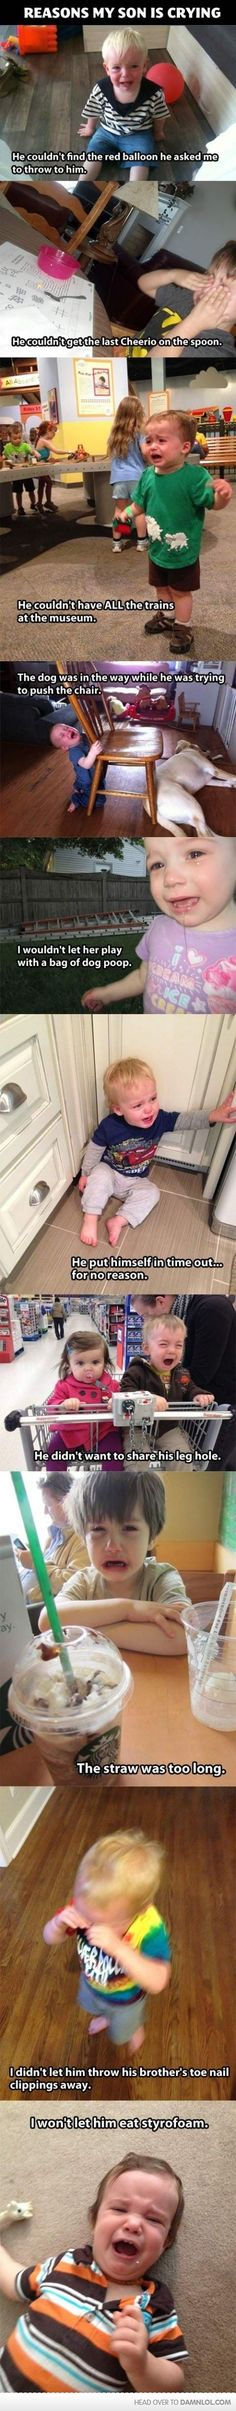 The joys of children lol